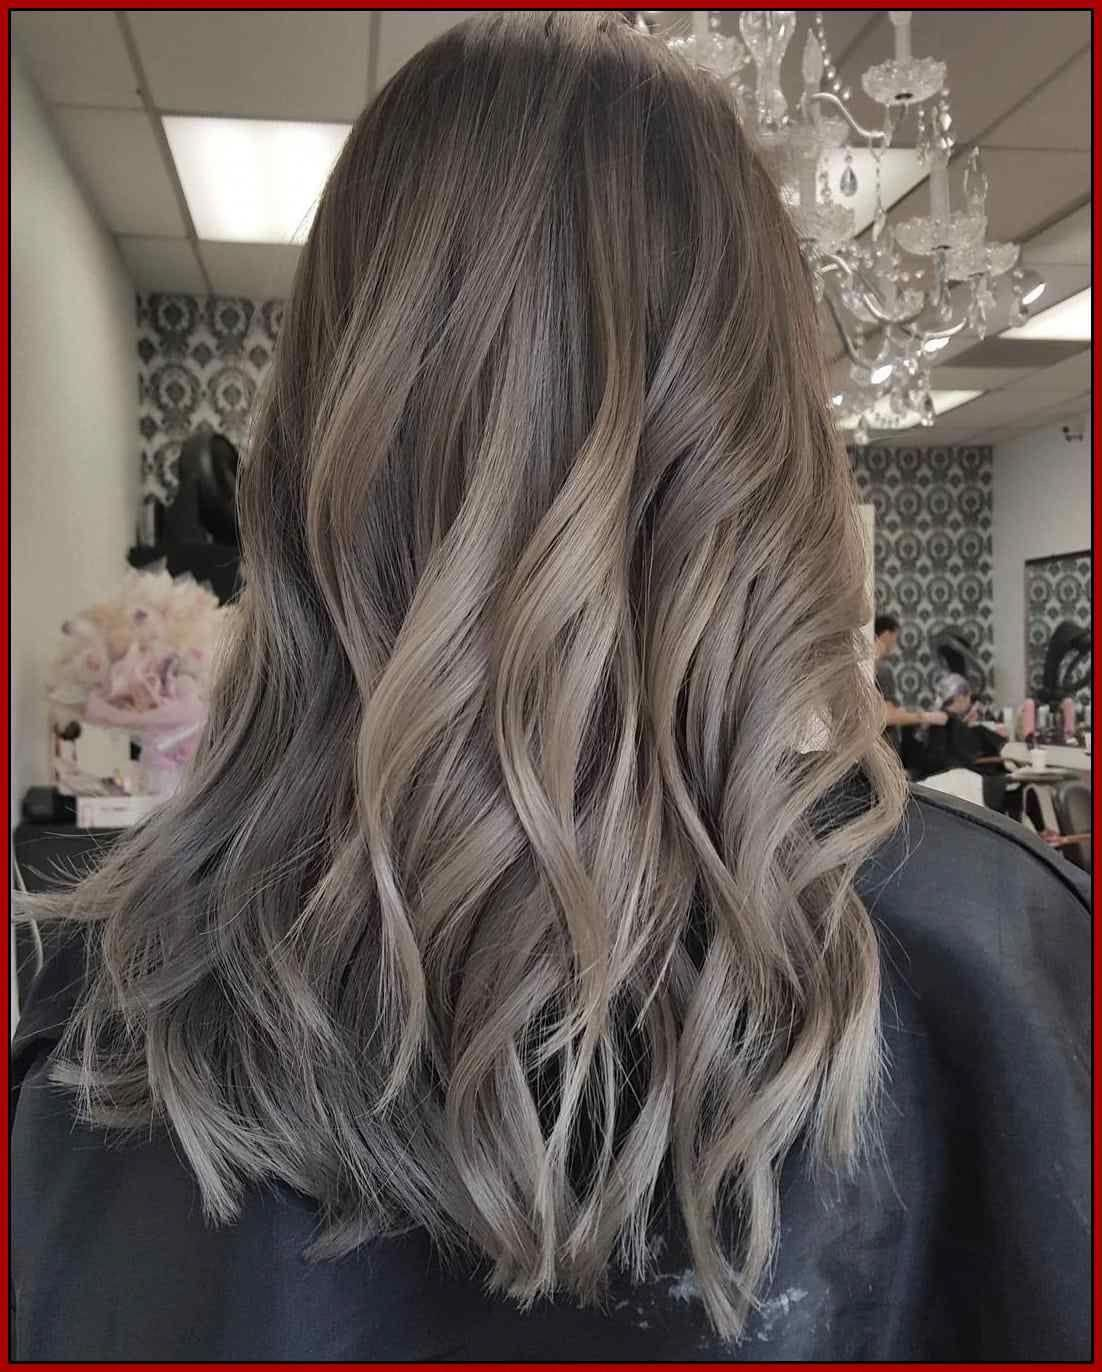 These blonde balayage short hair are fabulous ...